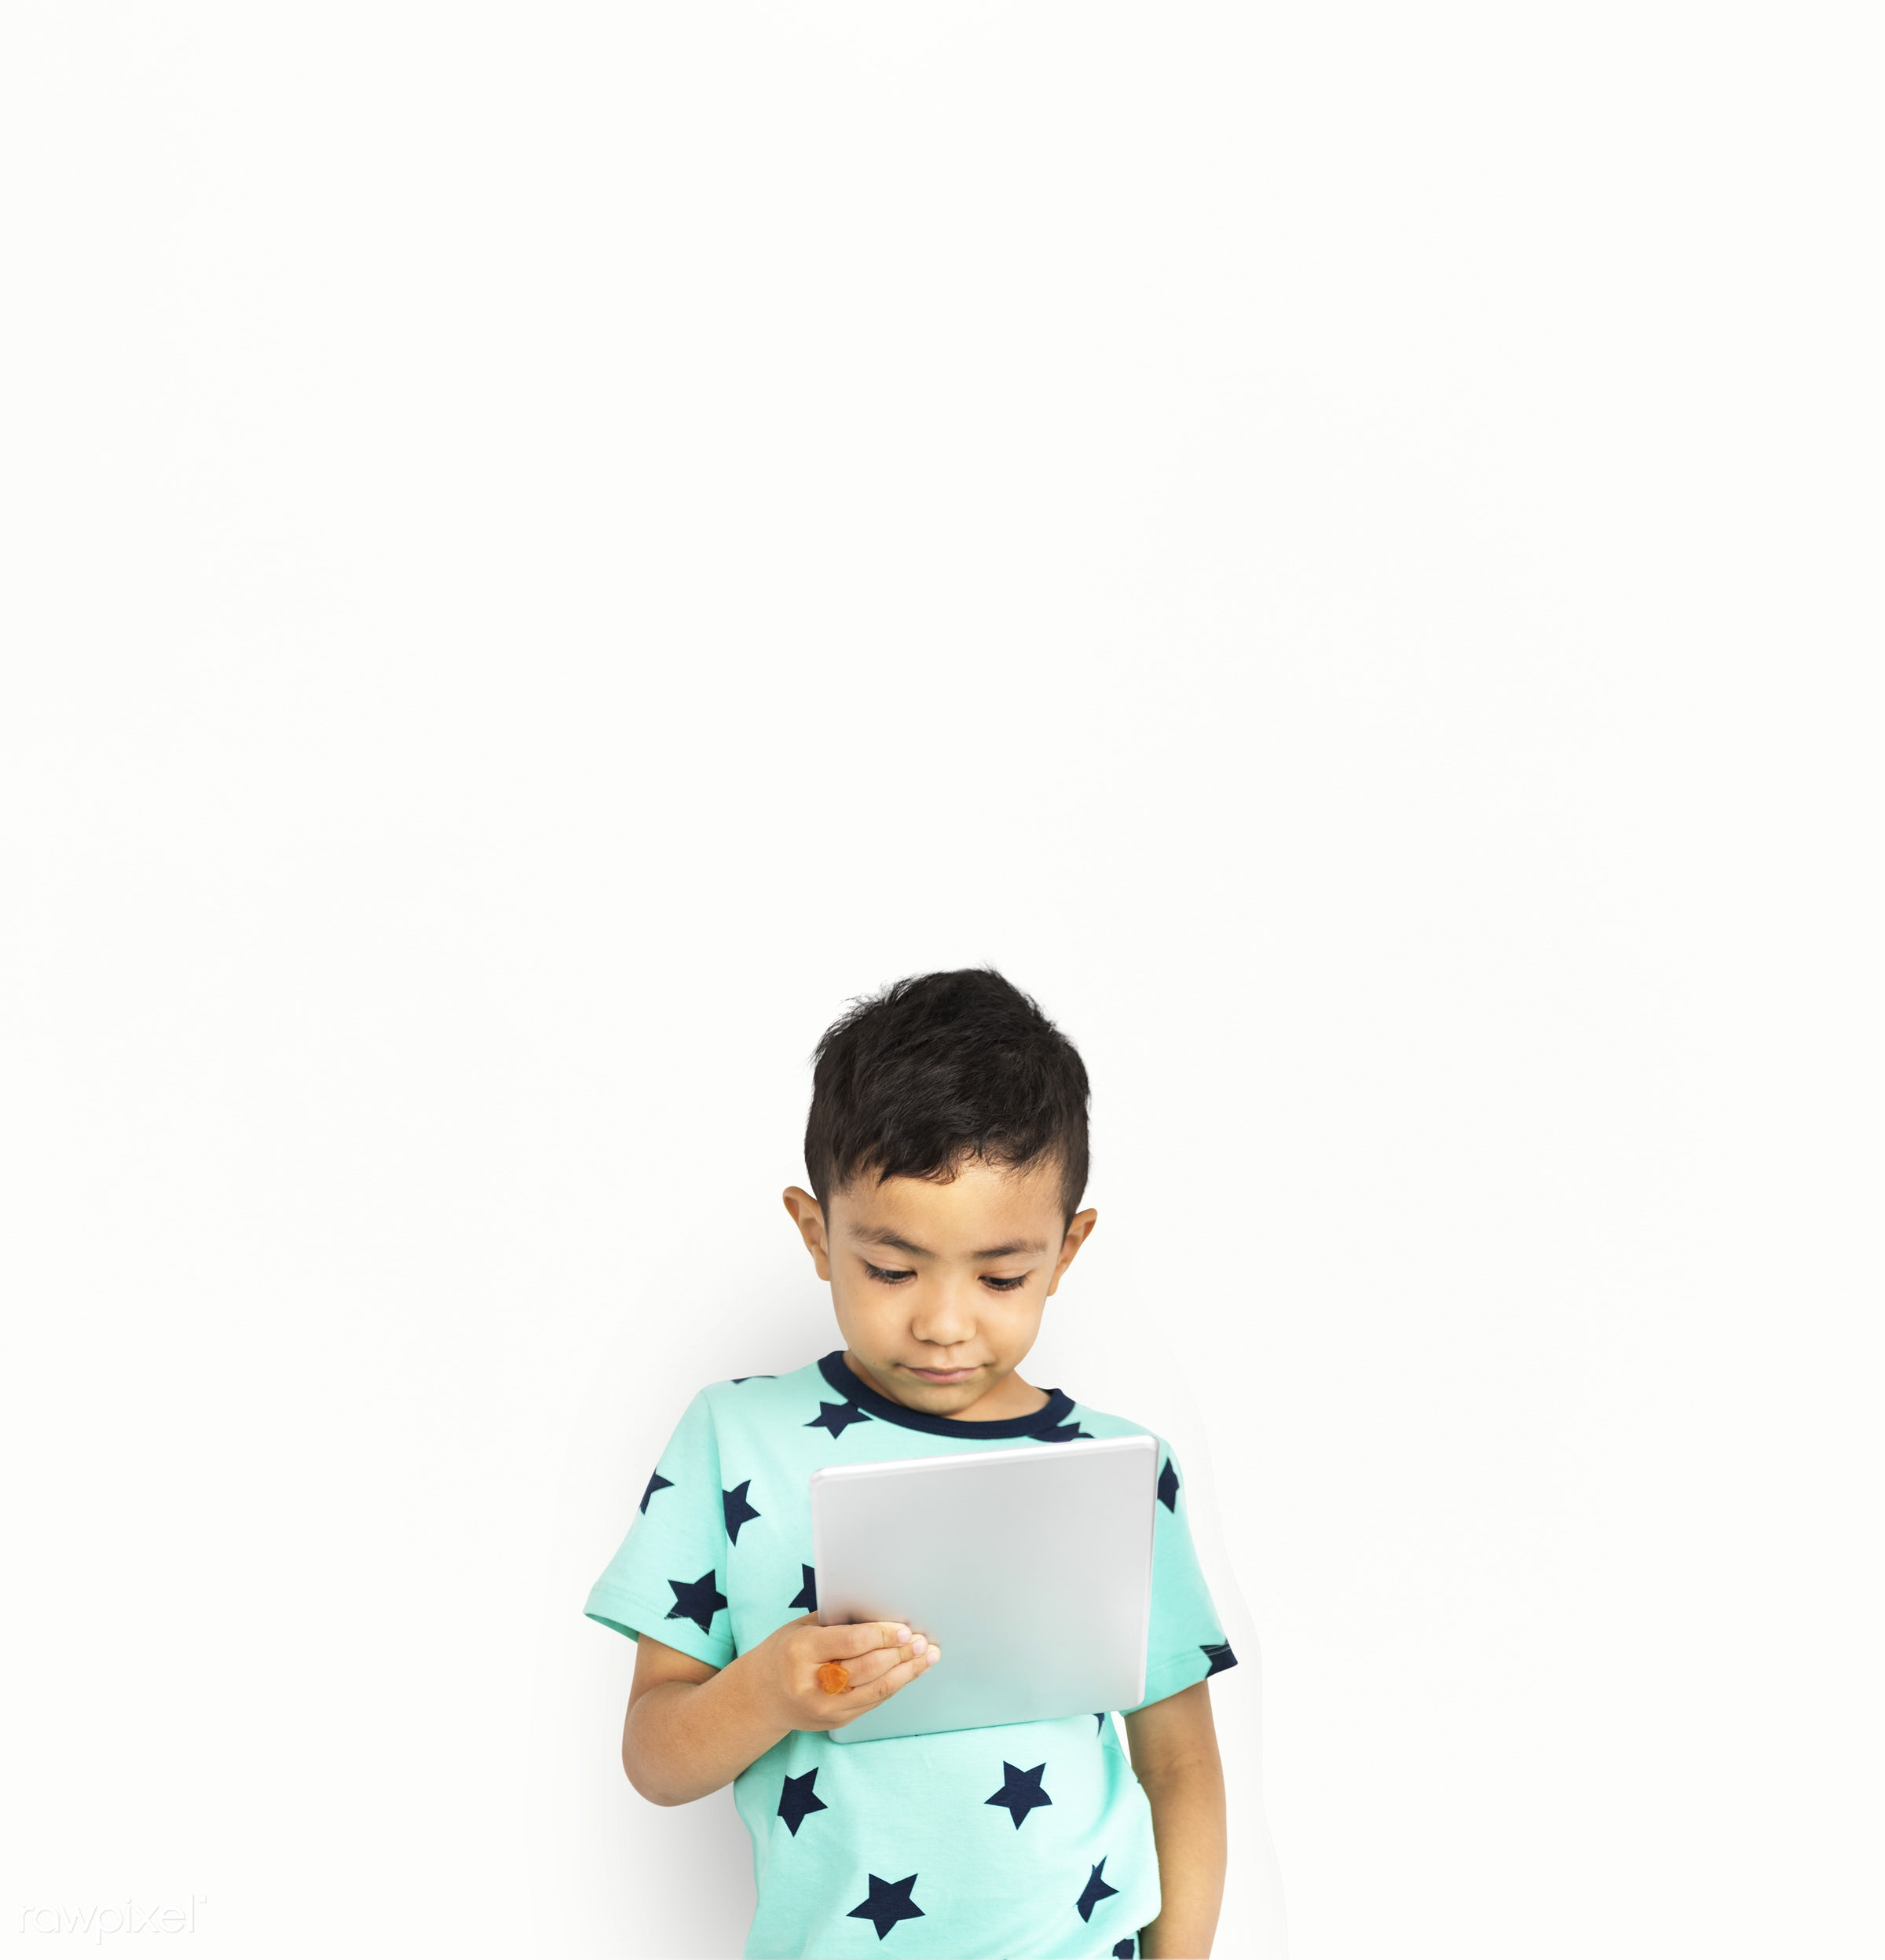 alone, boy, cheerful, child, children, isolated, kid, one, playful, smiling, young, youth, wireless, digital, device, tablet...